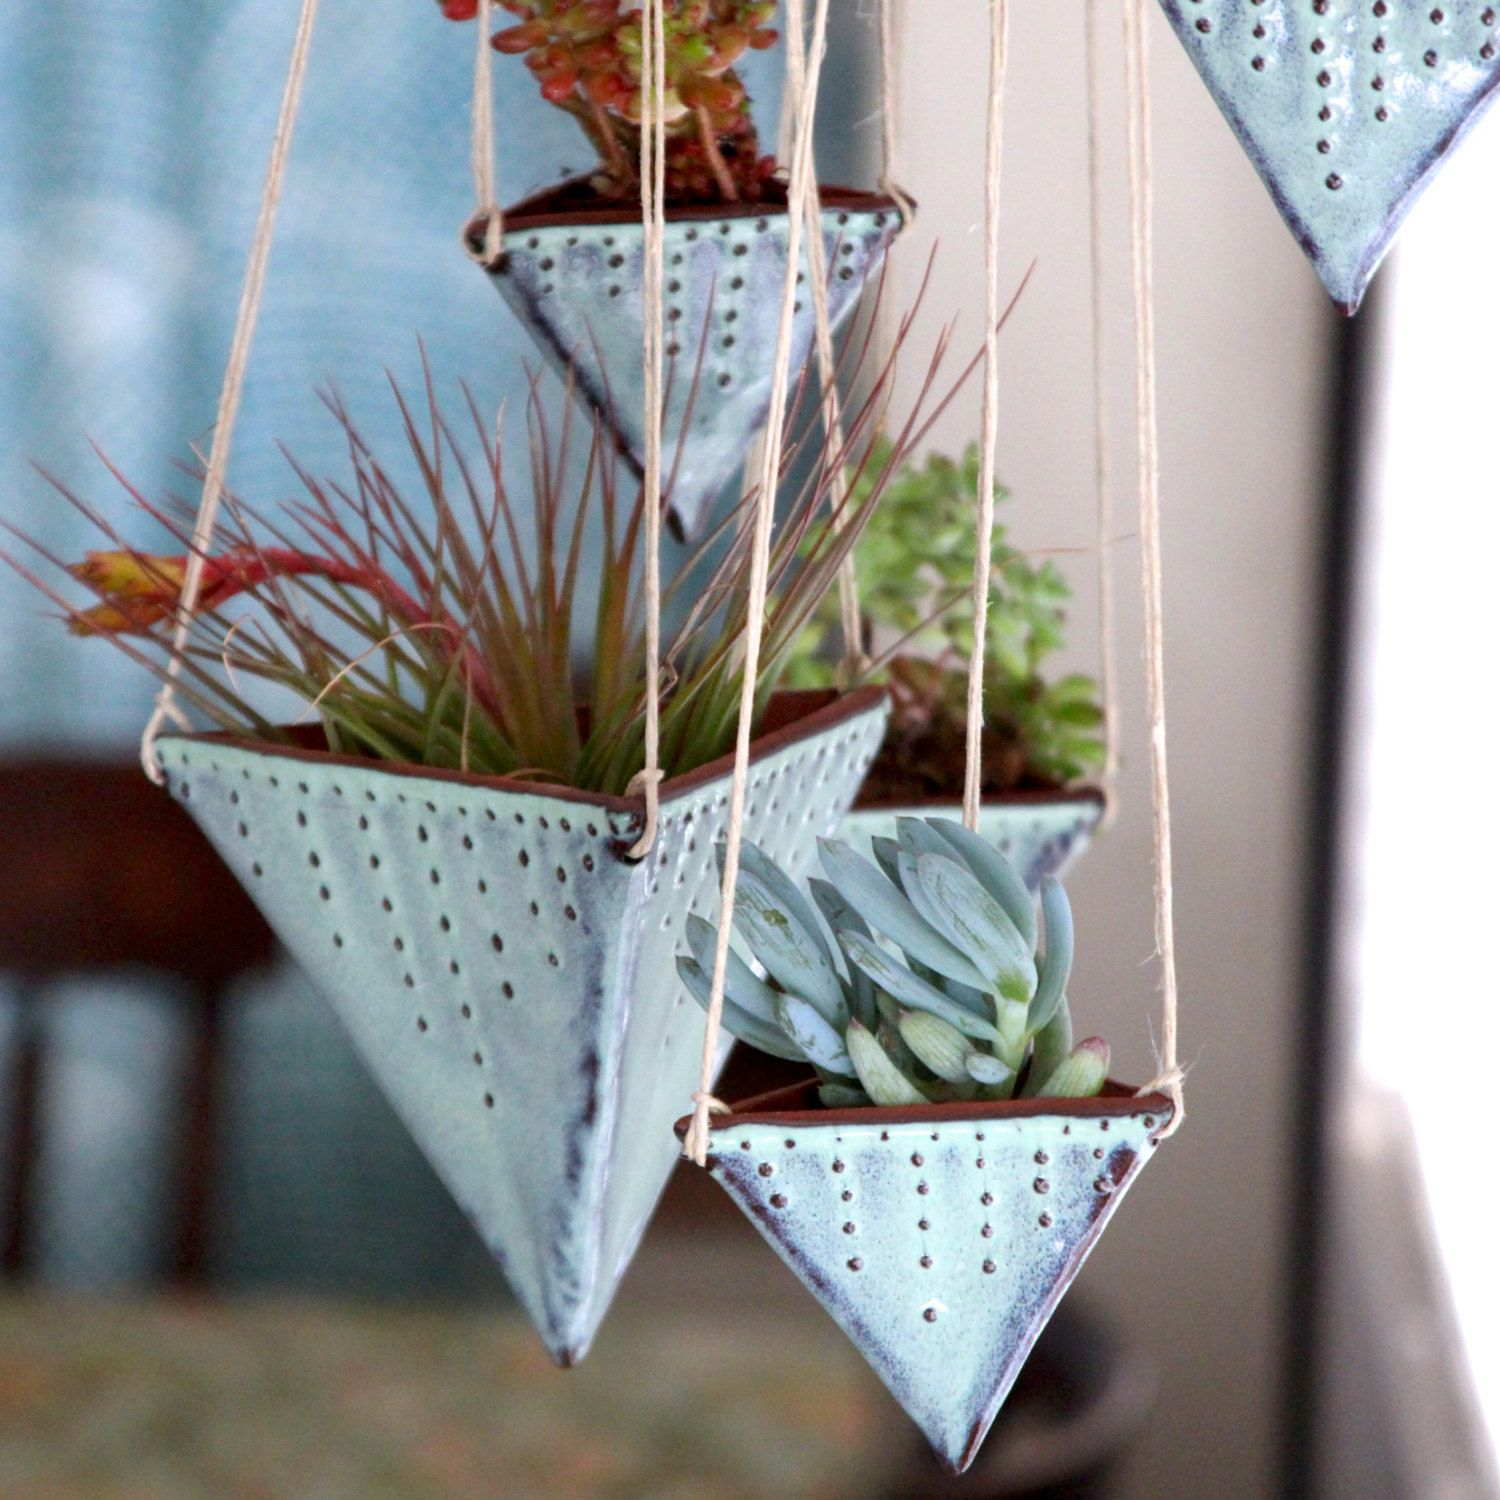 geometric hanging planter triangle pot with by backbaypottery  - geometric hanging planter  triangle pot with dots design  meduim size modern home decor  aqua mist  ready to ship